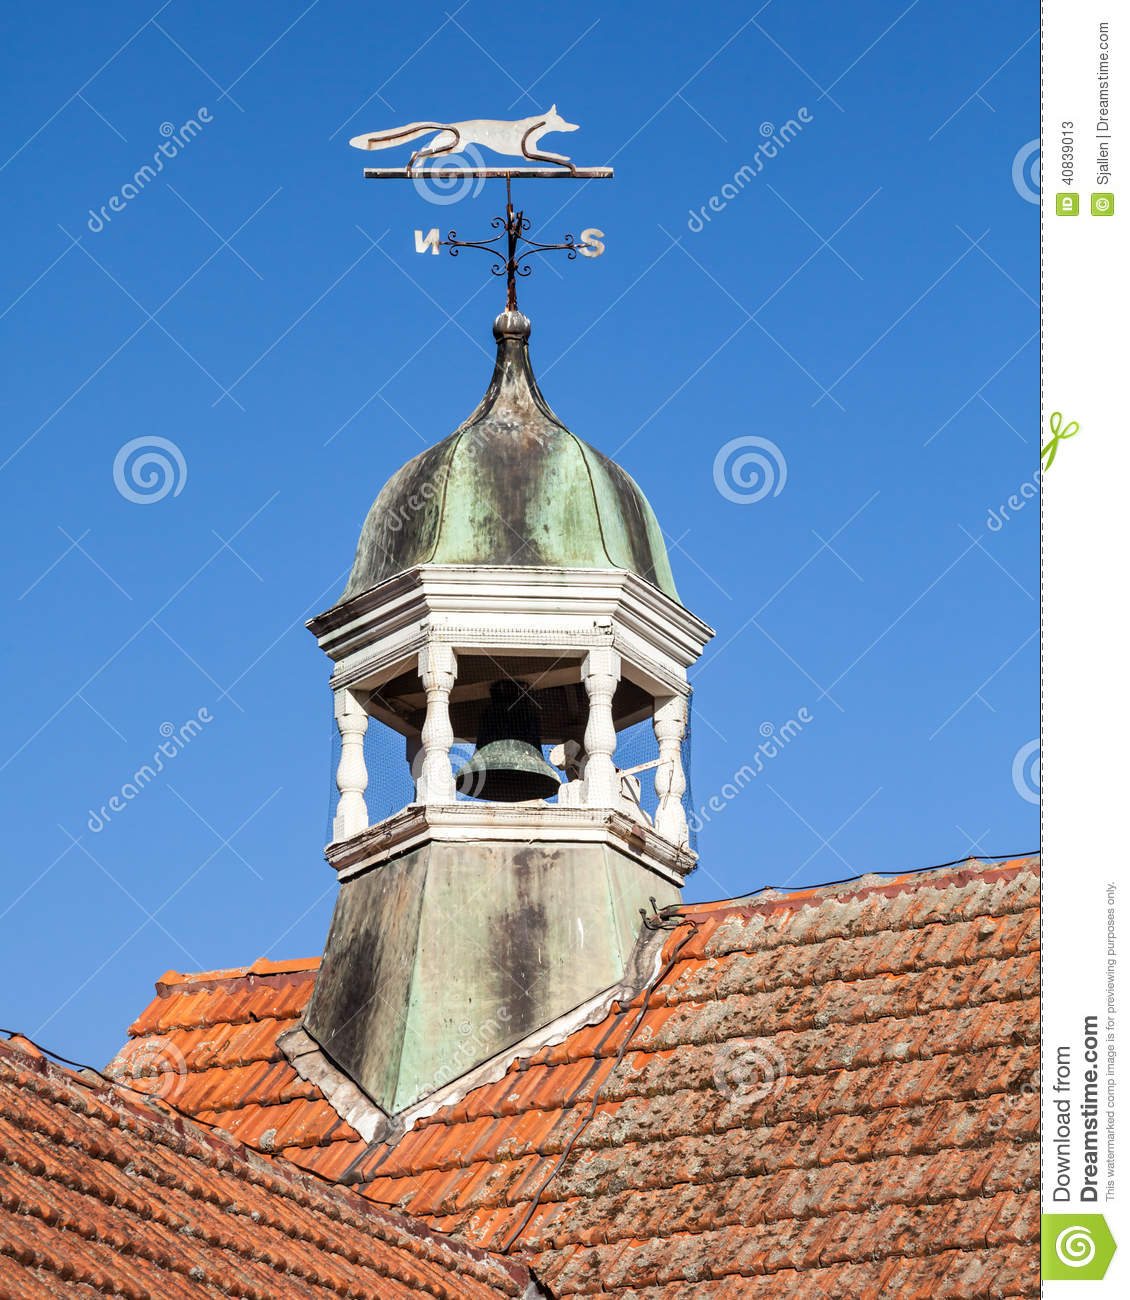 Tiled Orange Roof With Bell Tower And Fox Weather Vane